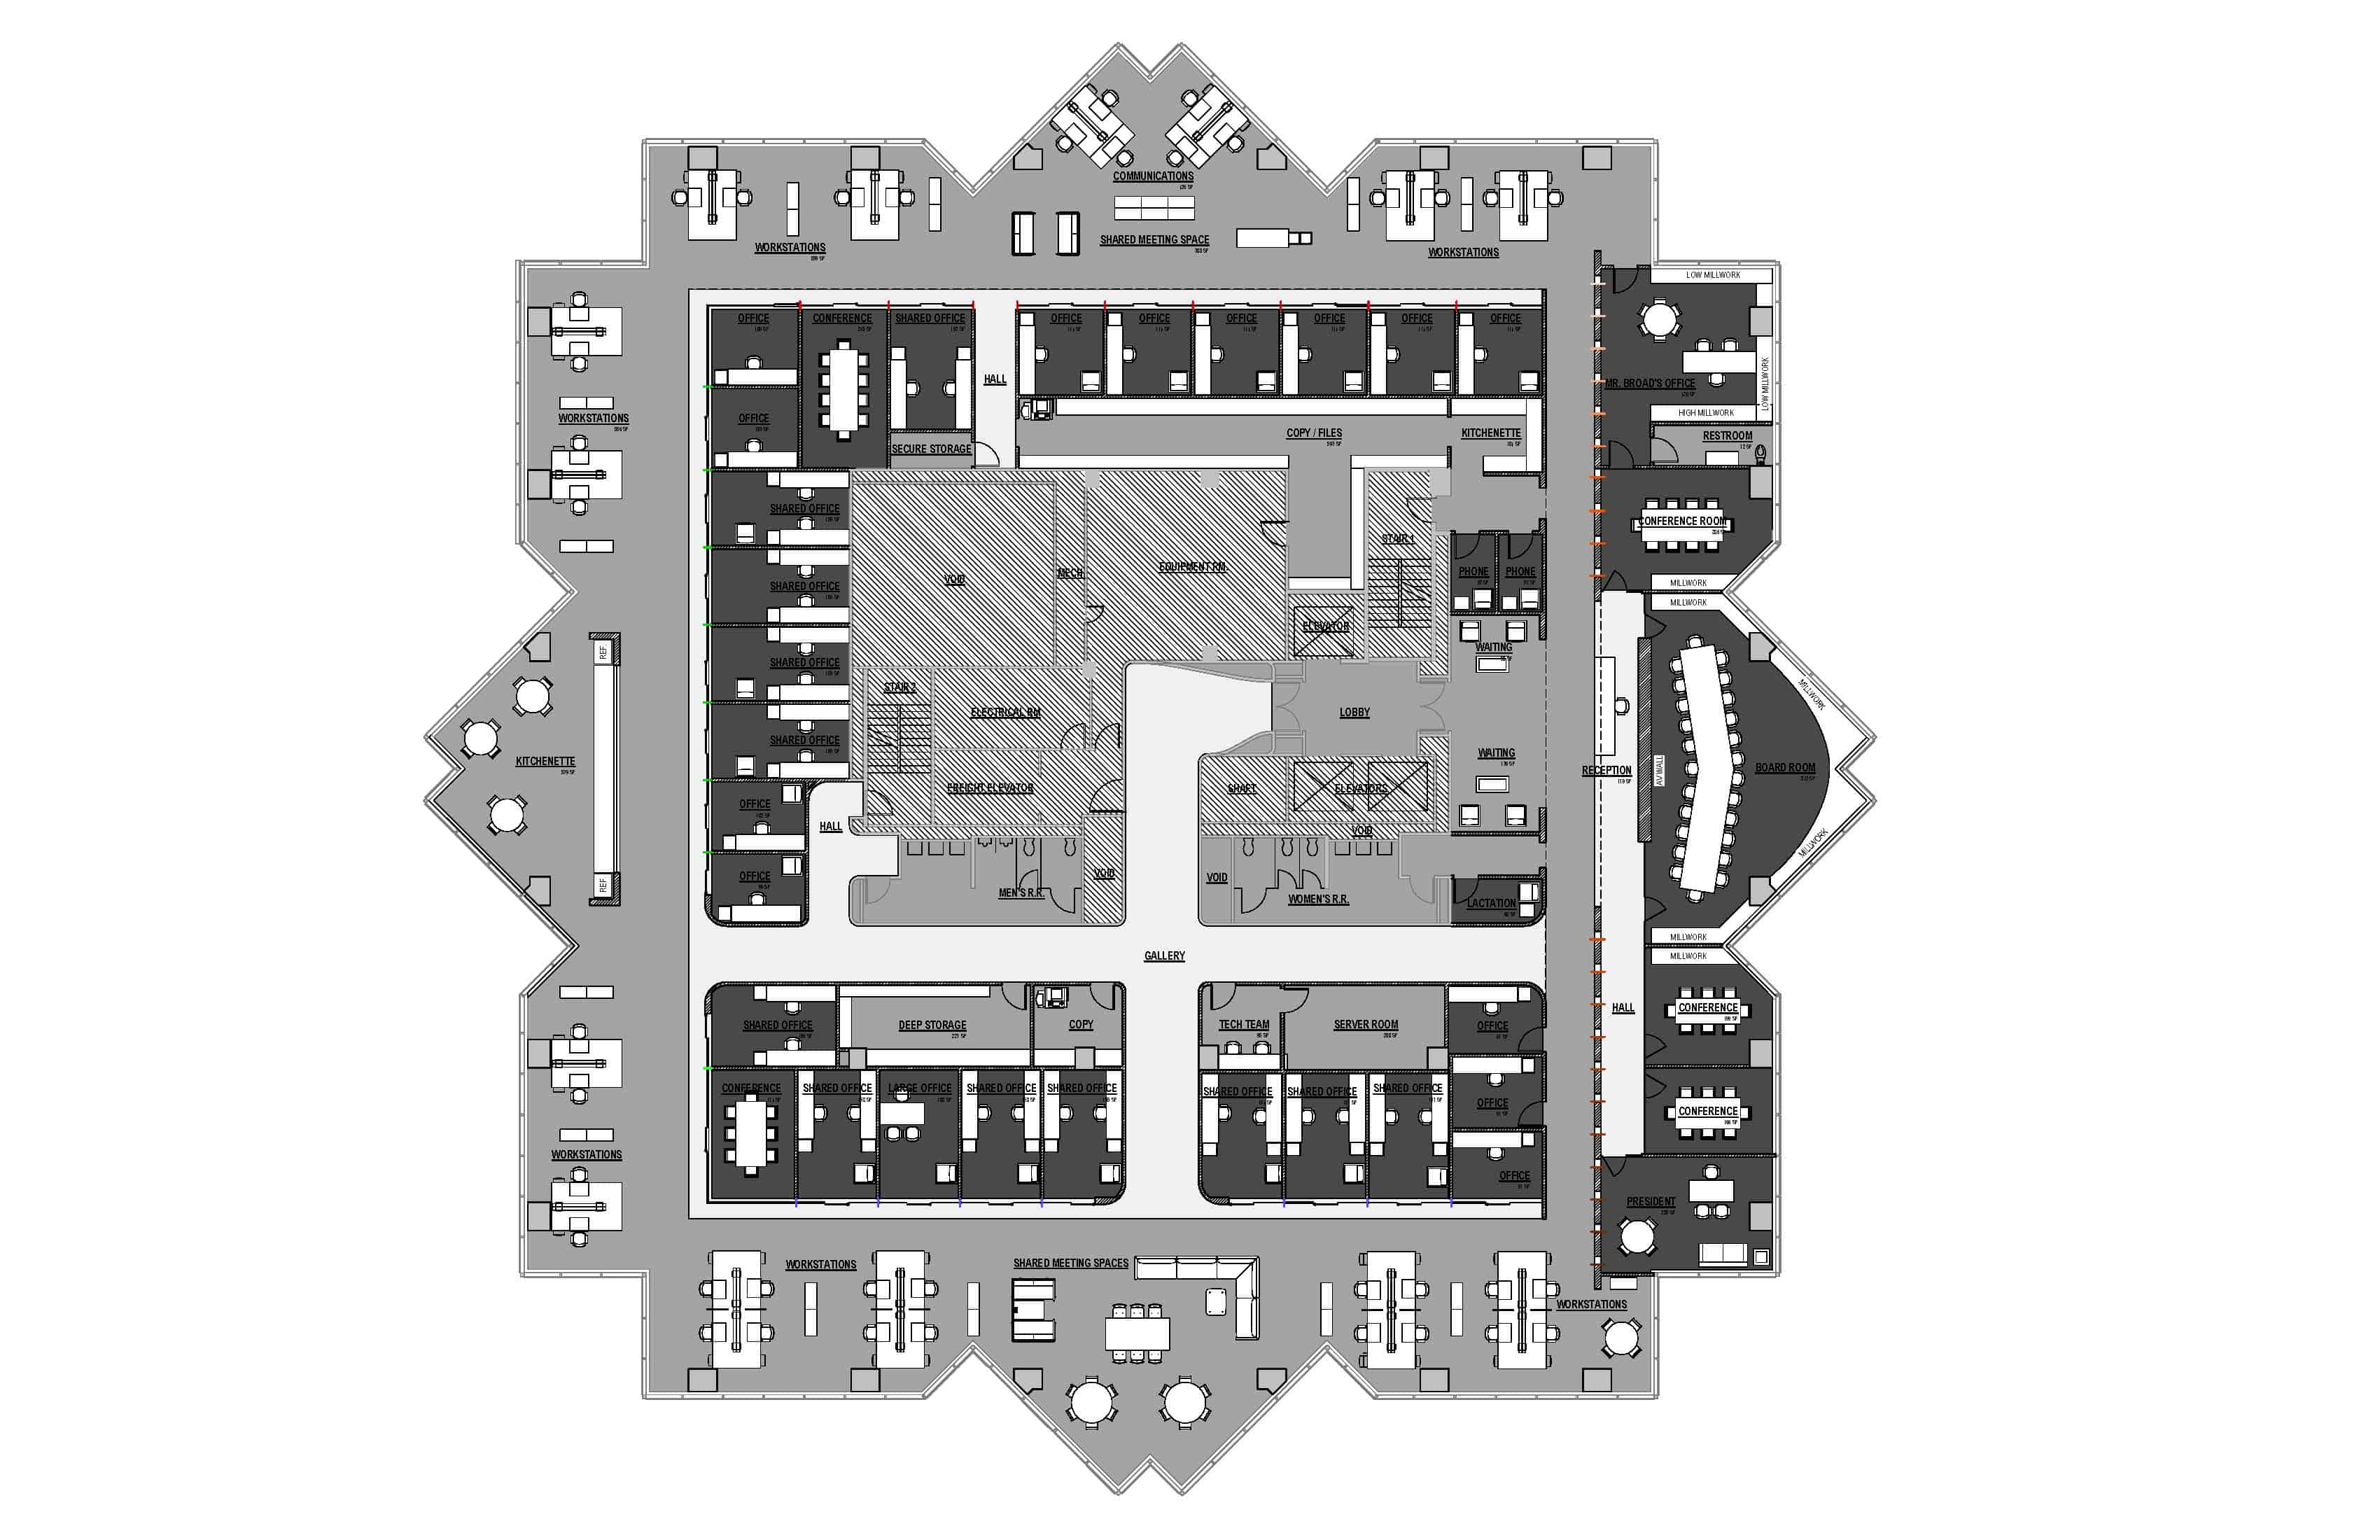 1348_Broad Foundation_1348.1_Presentation Floor Plan